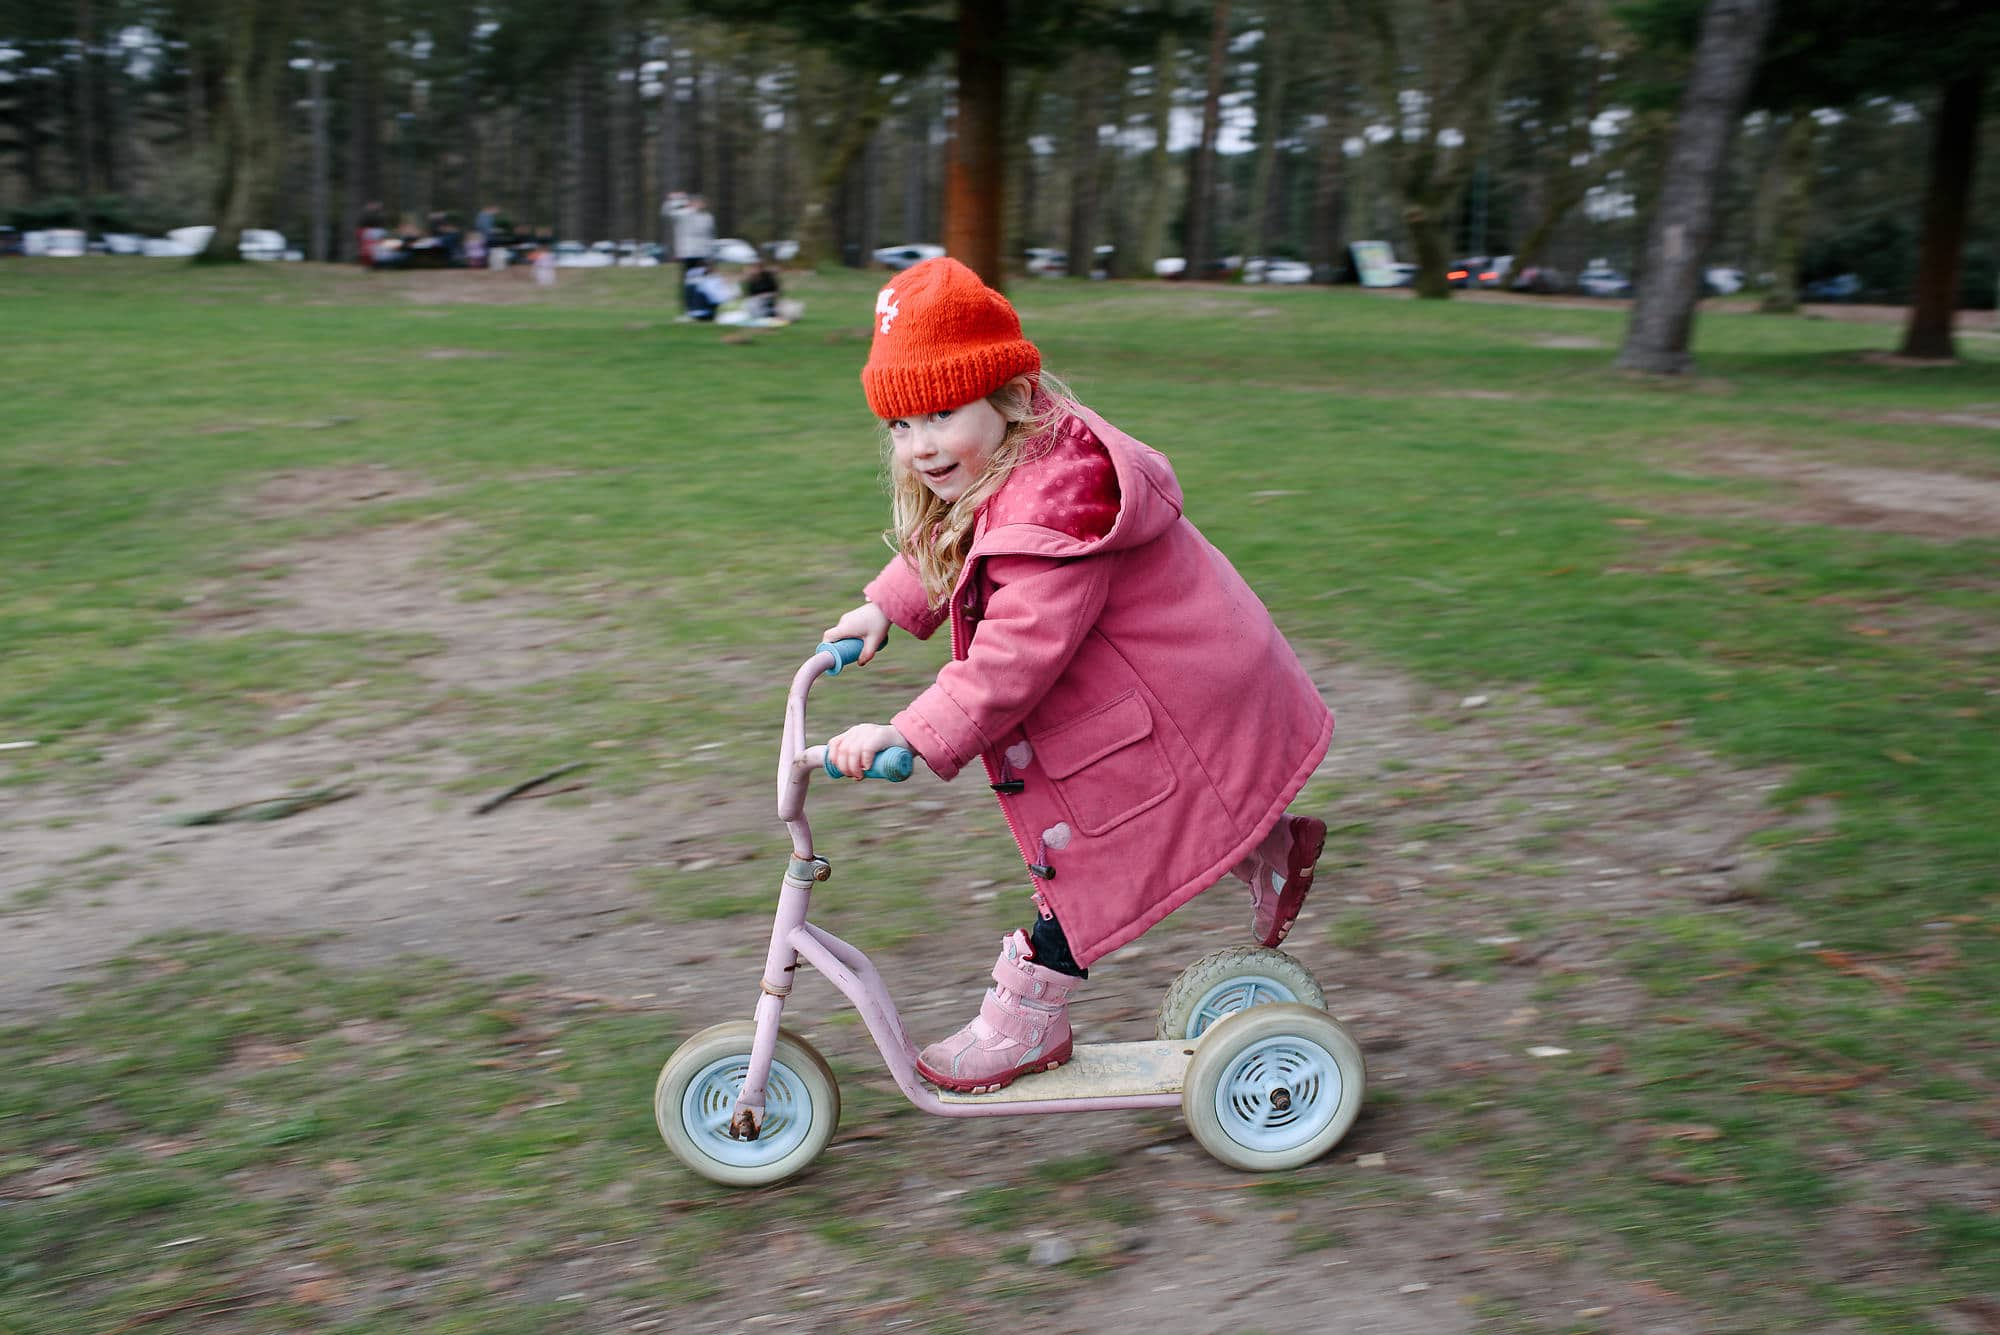 Family Day out at Thetford Forest 7